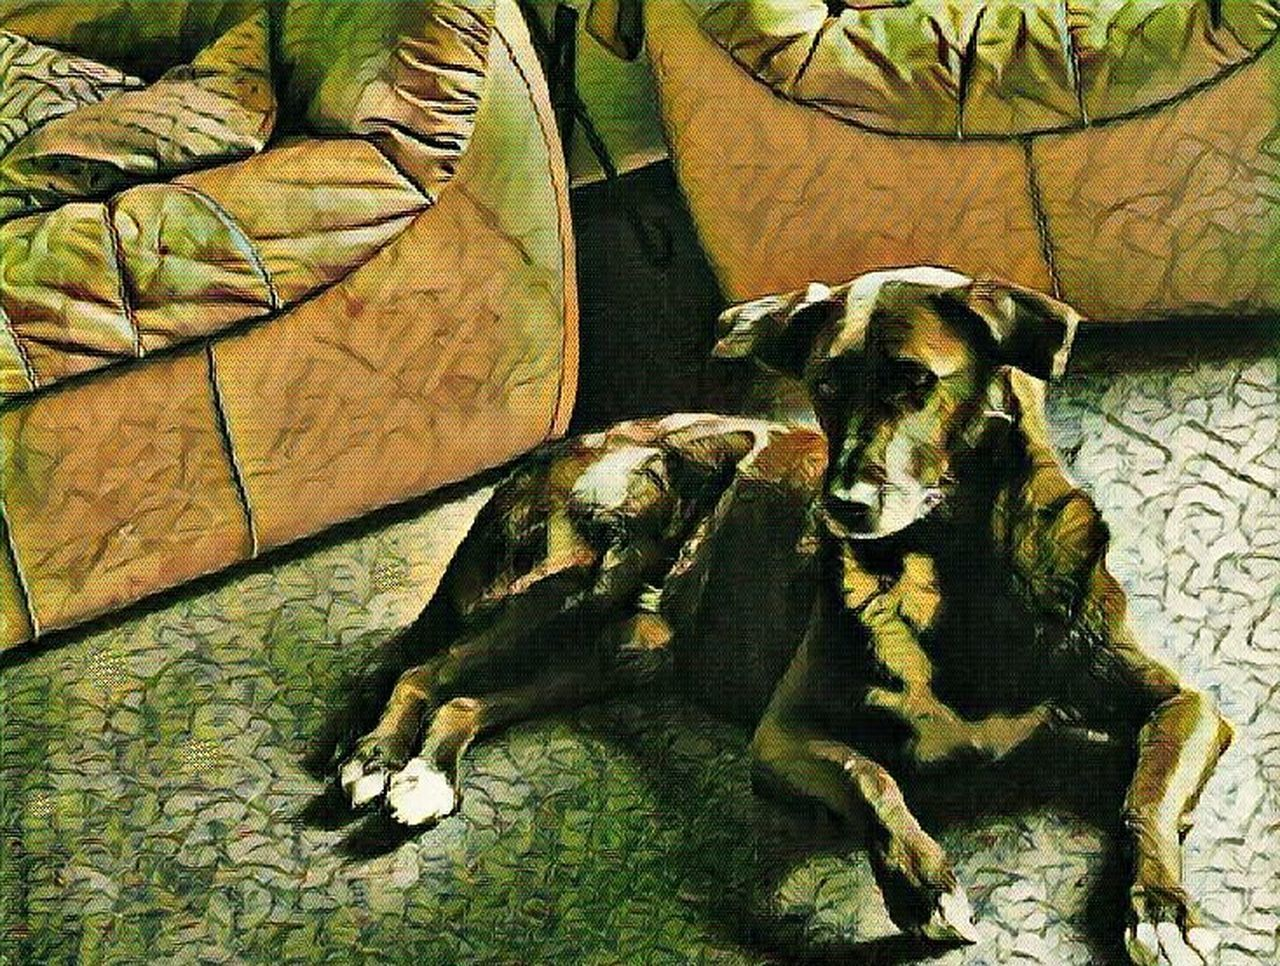 Drastic Edit Artistic Expression Watchful Dog Relaxing In The Living Room Dogslife Dogs Pet Portrait Of A Dog Art Photography Fun With Editing :) Pets Of EyeemHome Is Where The Art Is Frankfurt Germany🇩🇪